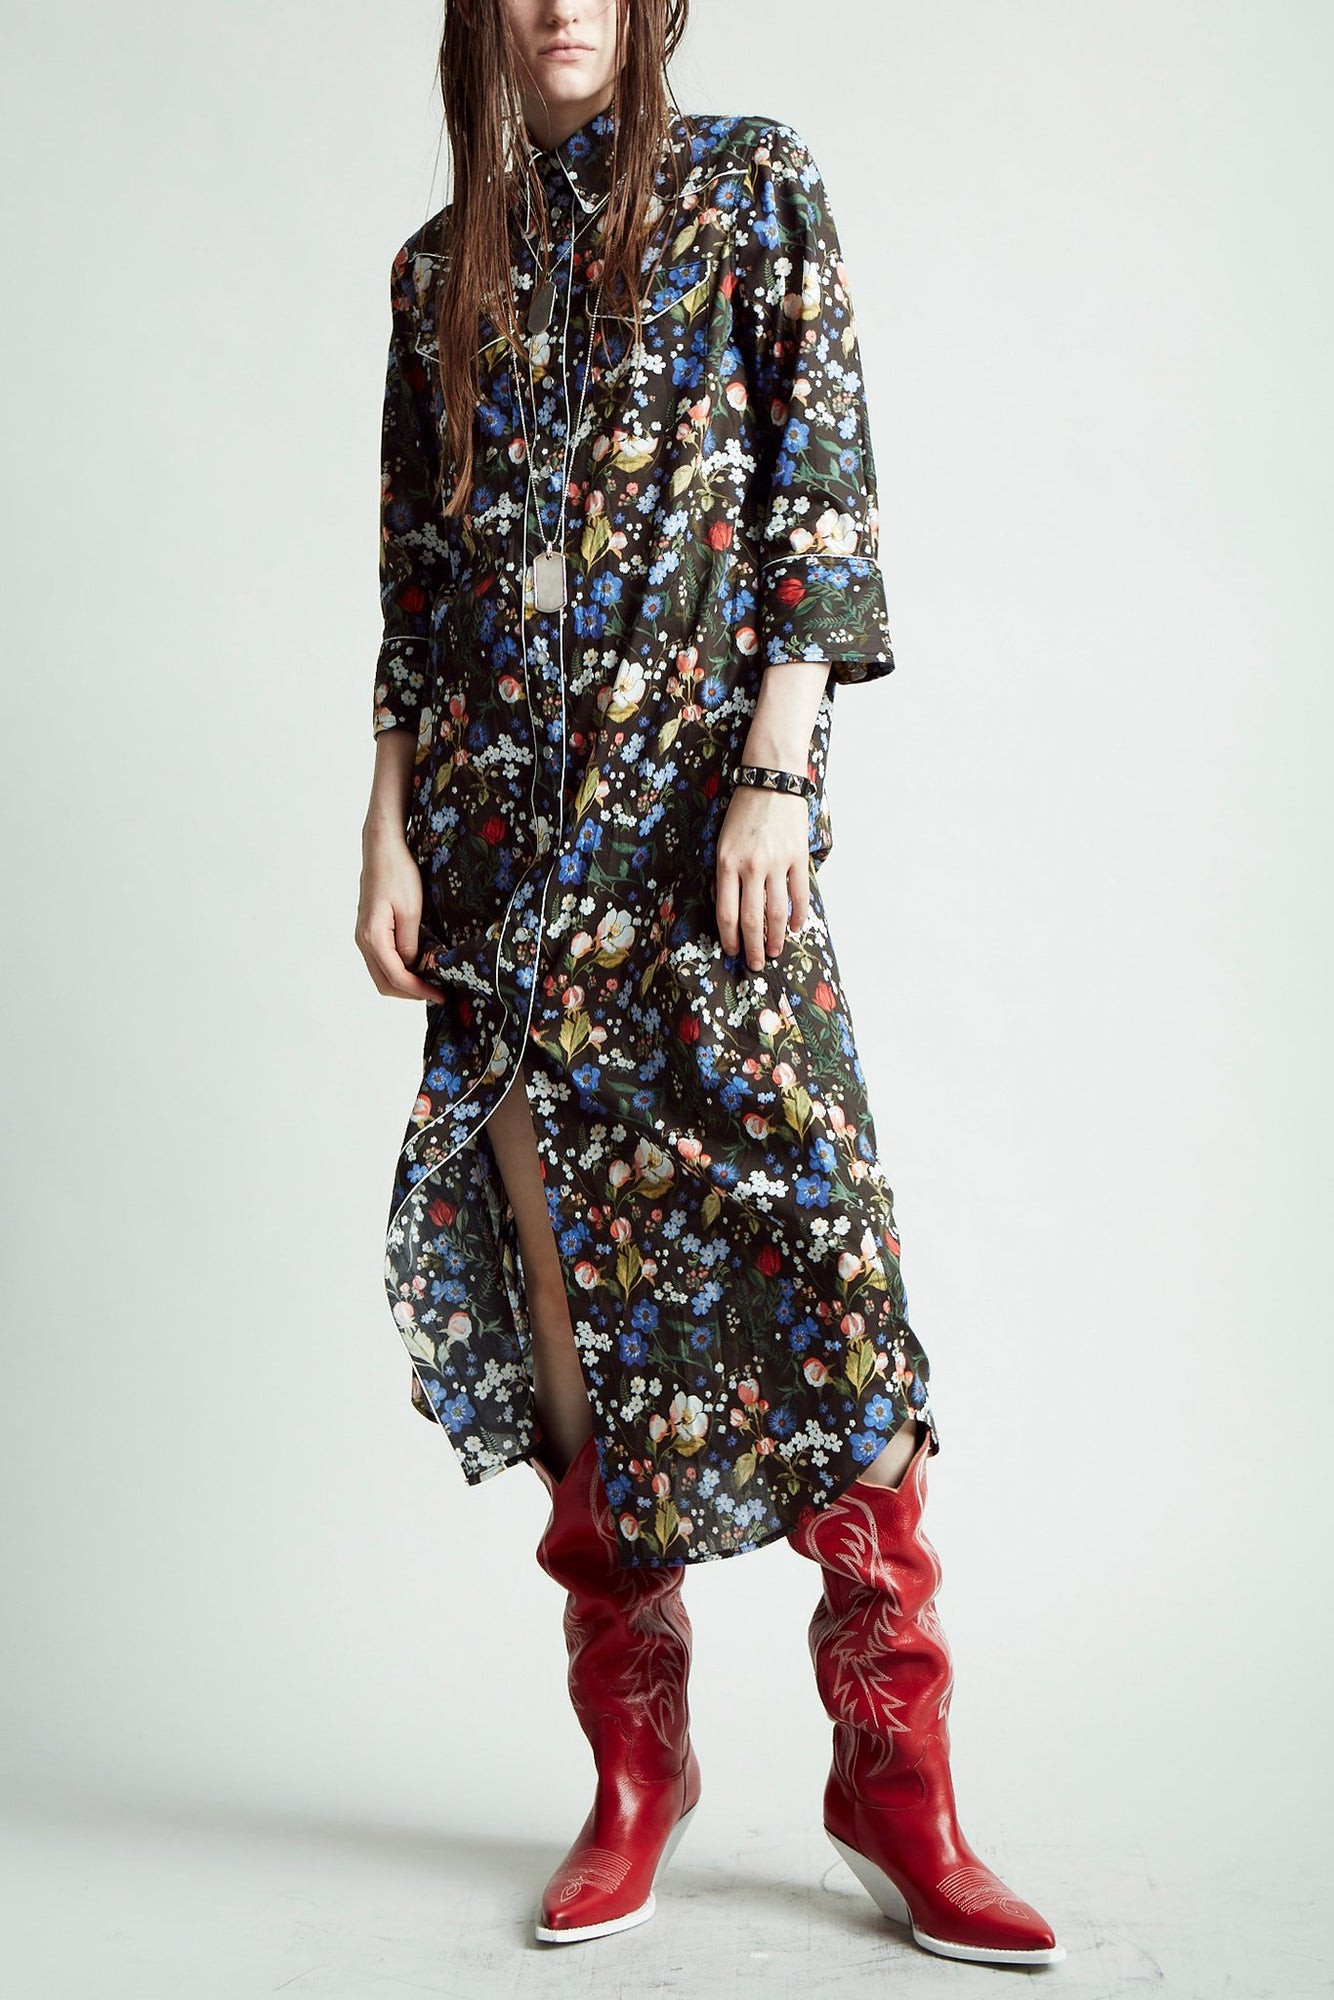 3/4 Sleeve Cowboy Dress - Multicolor Floral